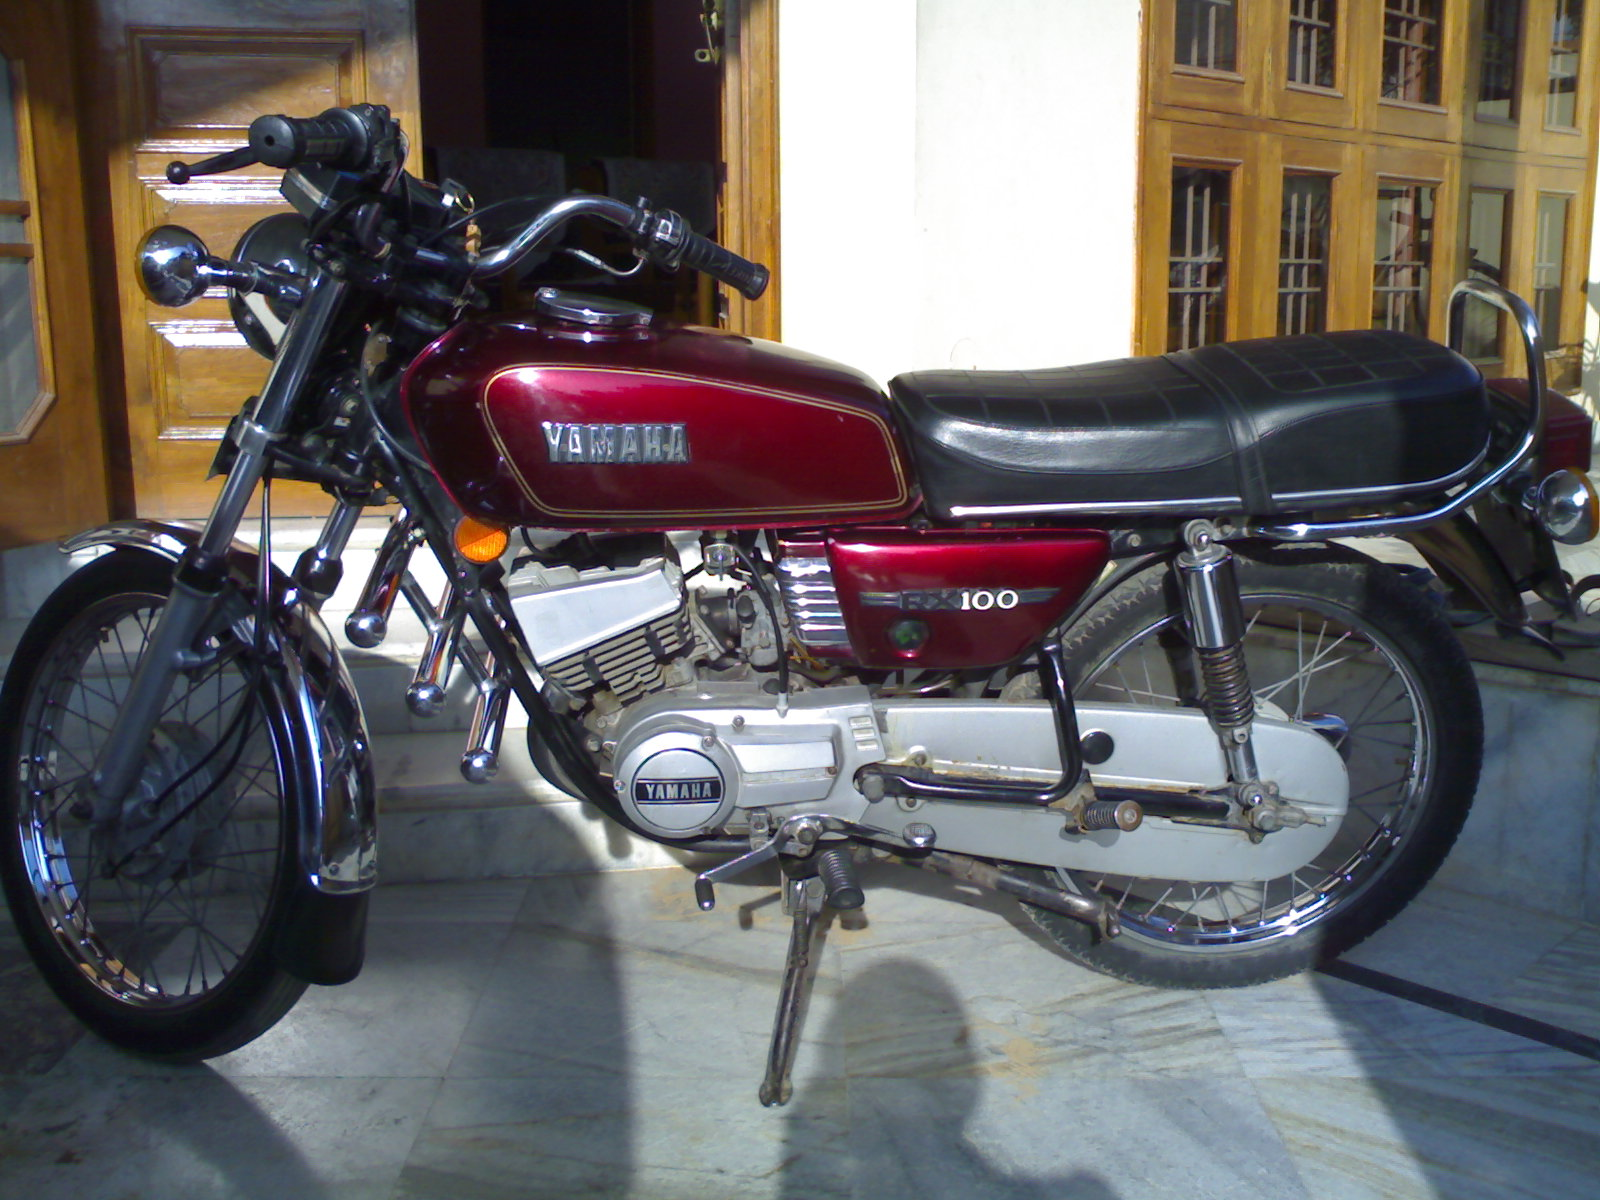 Dream bike of Indian Youth - YAMAHA RX100 Customer Review